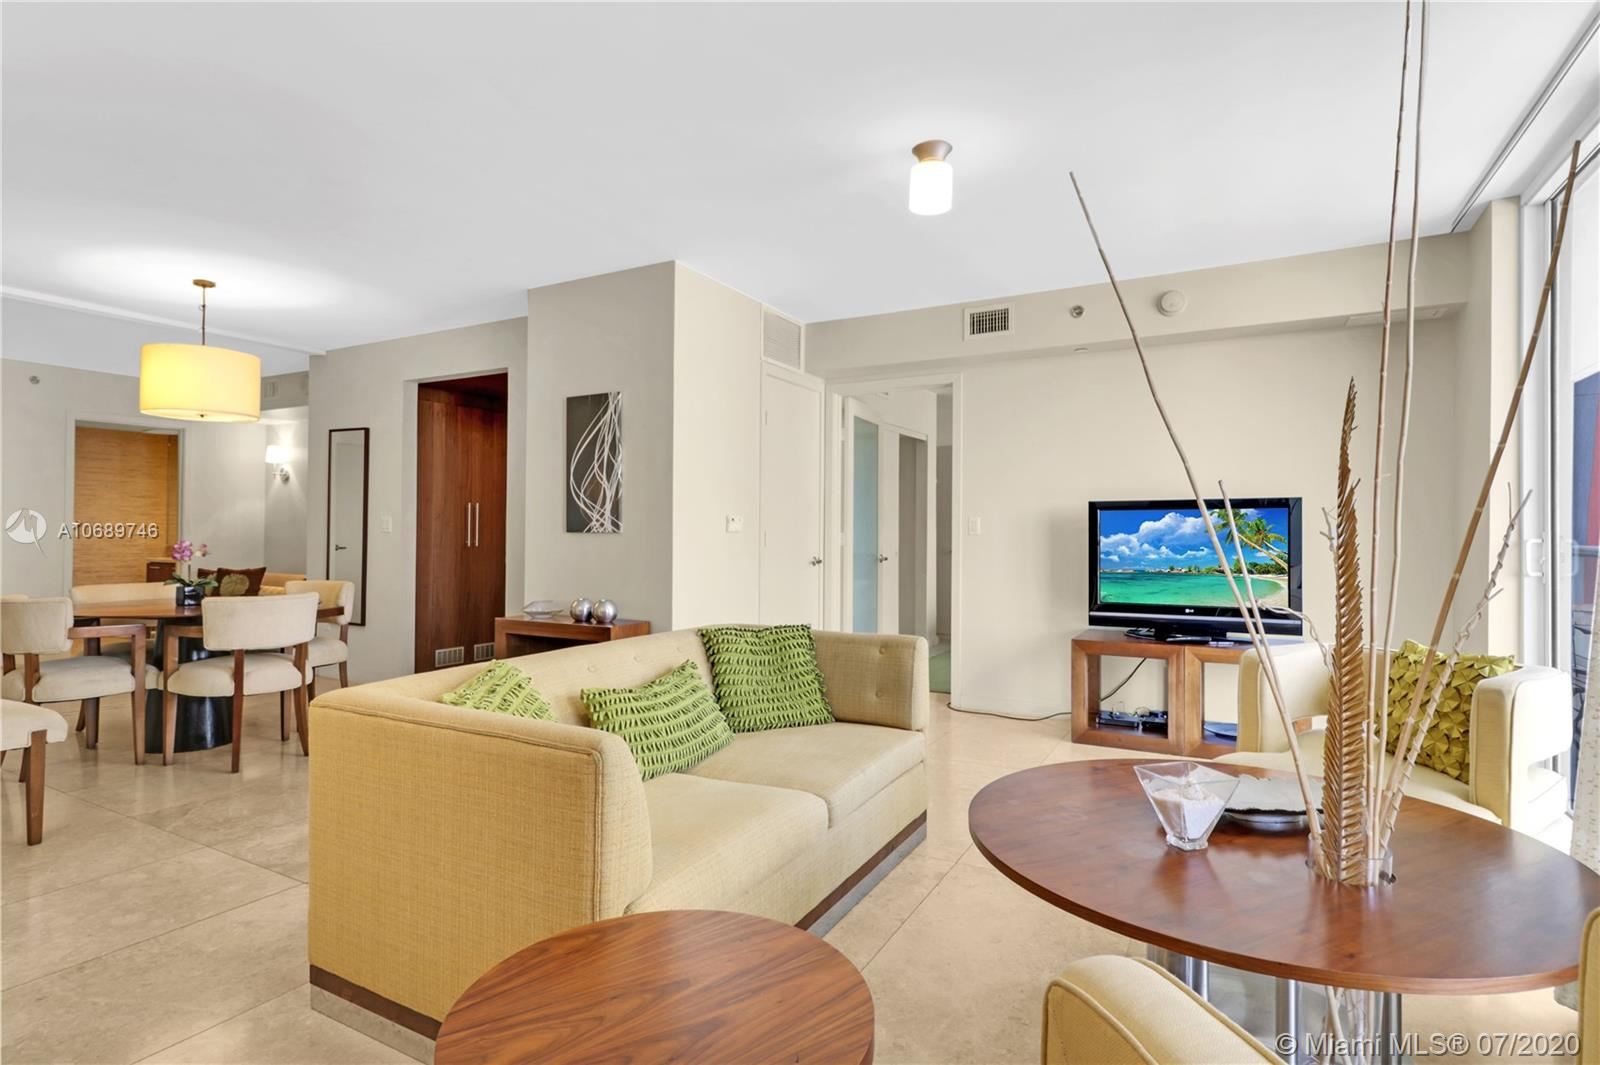 FULLY FURNISHED 1 BEDROOM IN SUITE + DEN THAT CAN BE ACCOMMODATED  AS A SECOND BEDROOM WITH IT'S OWN FULL BATH. CAN BE RENTED UP TO 12 TIMES A YEAR!.